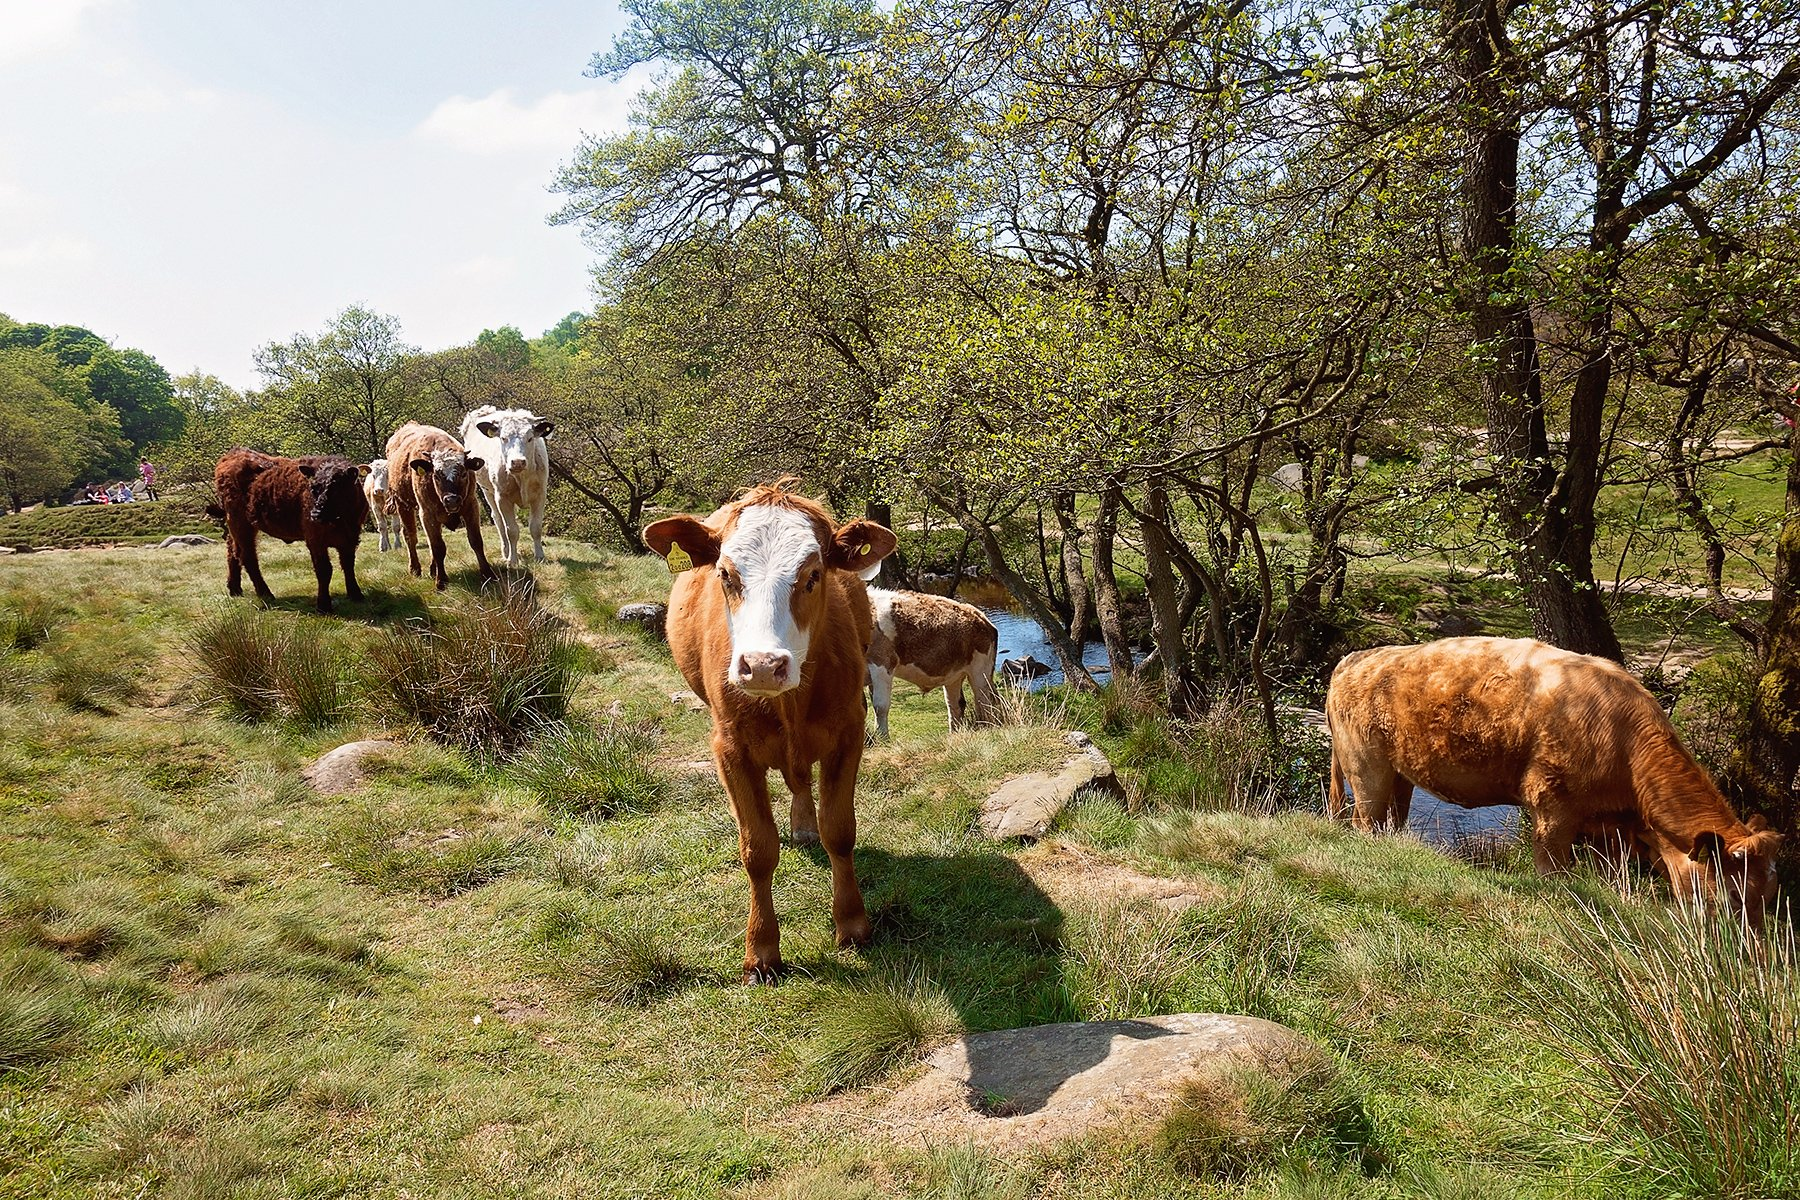 Cows in Padley Gorge, Longshaw